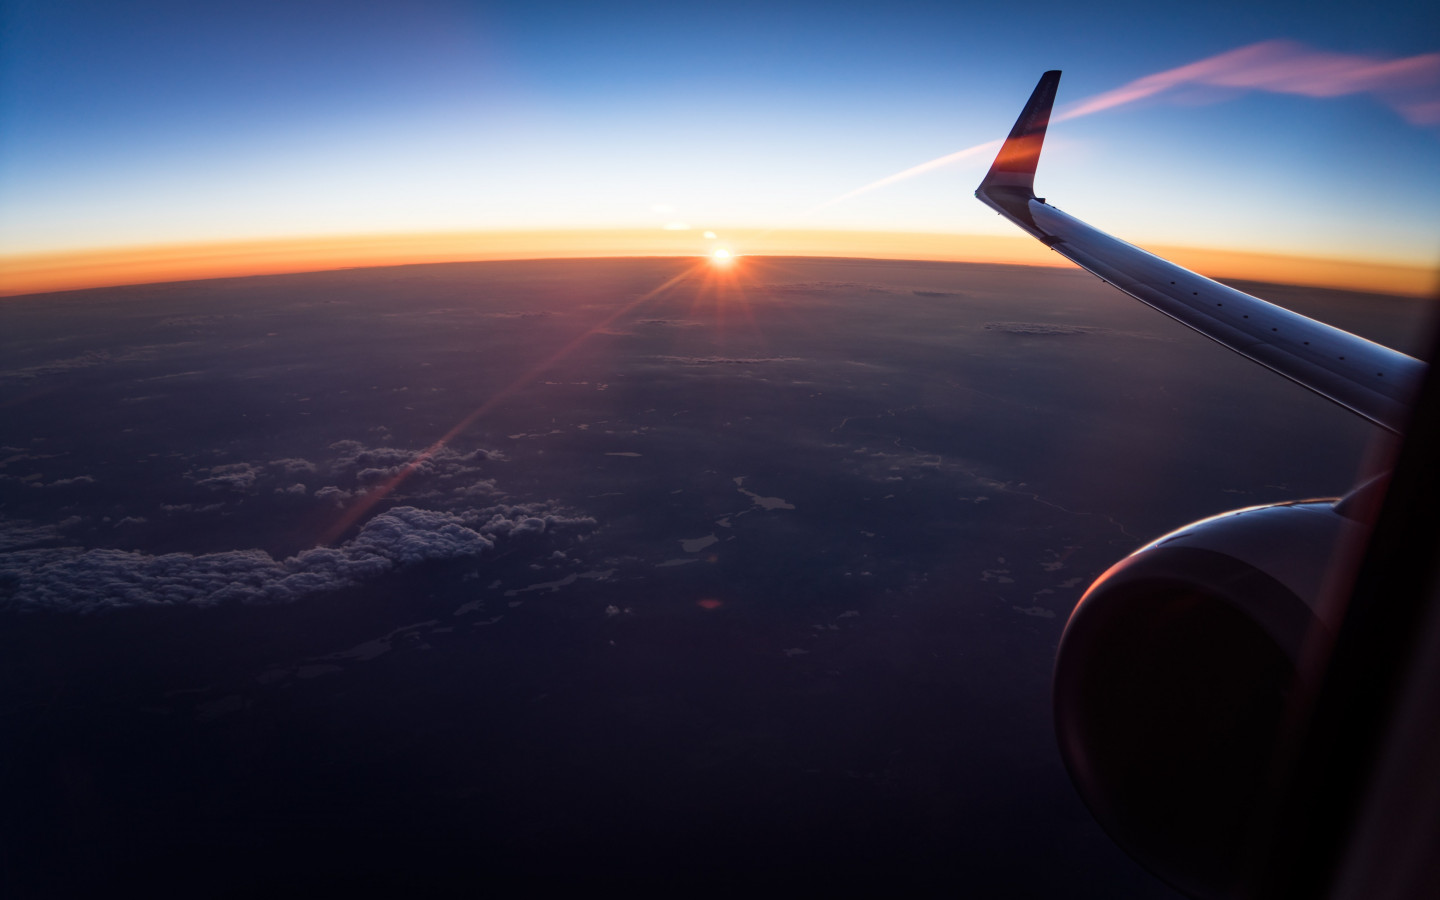 In the plane watching the sunset wallpaper 1440x900